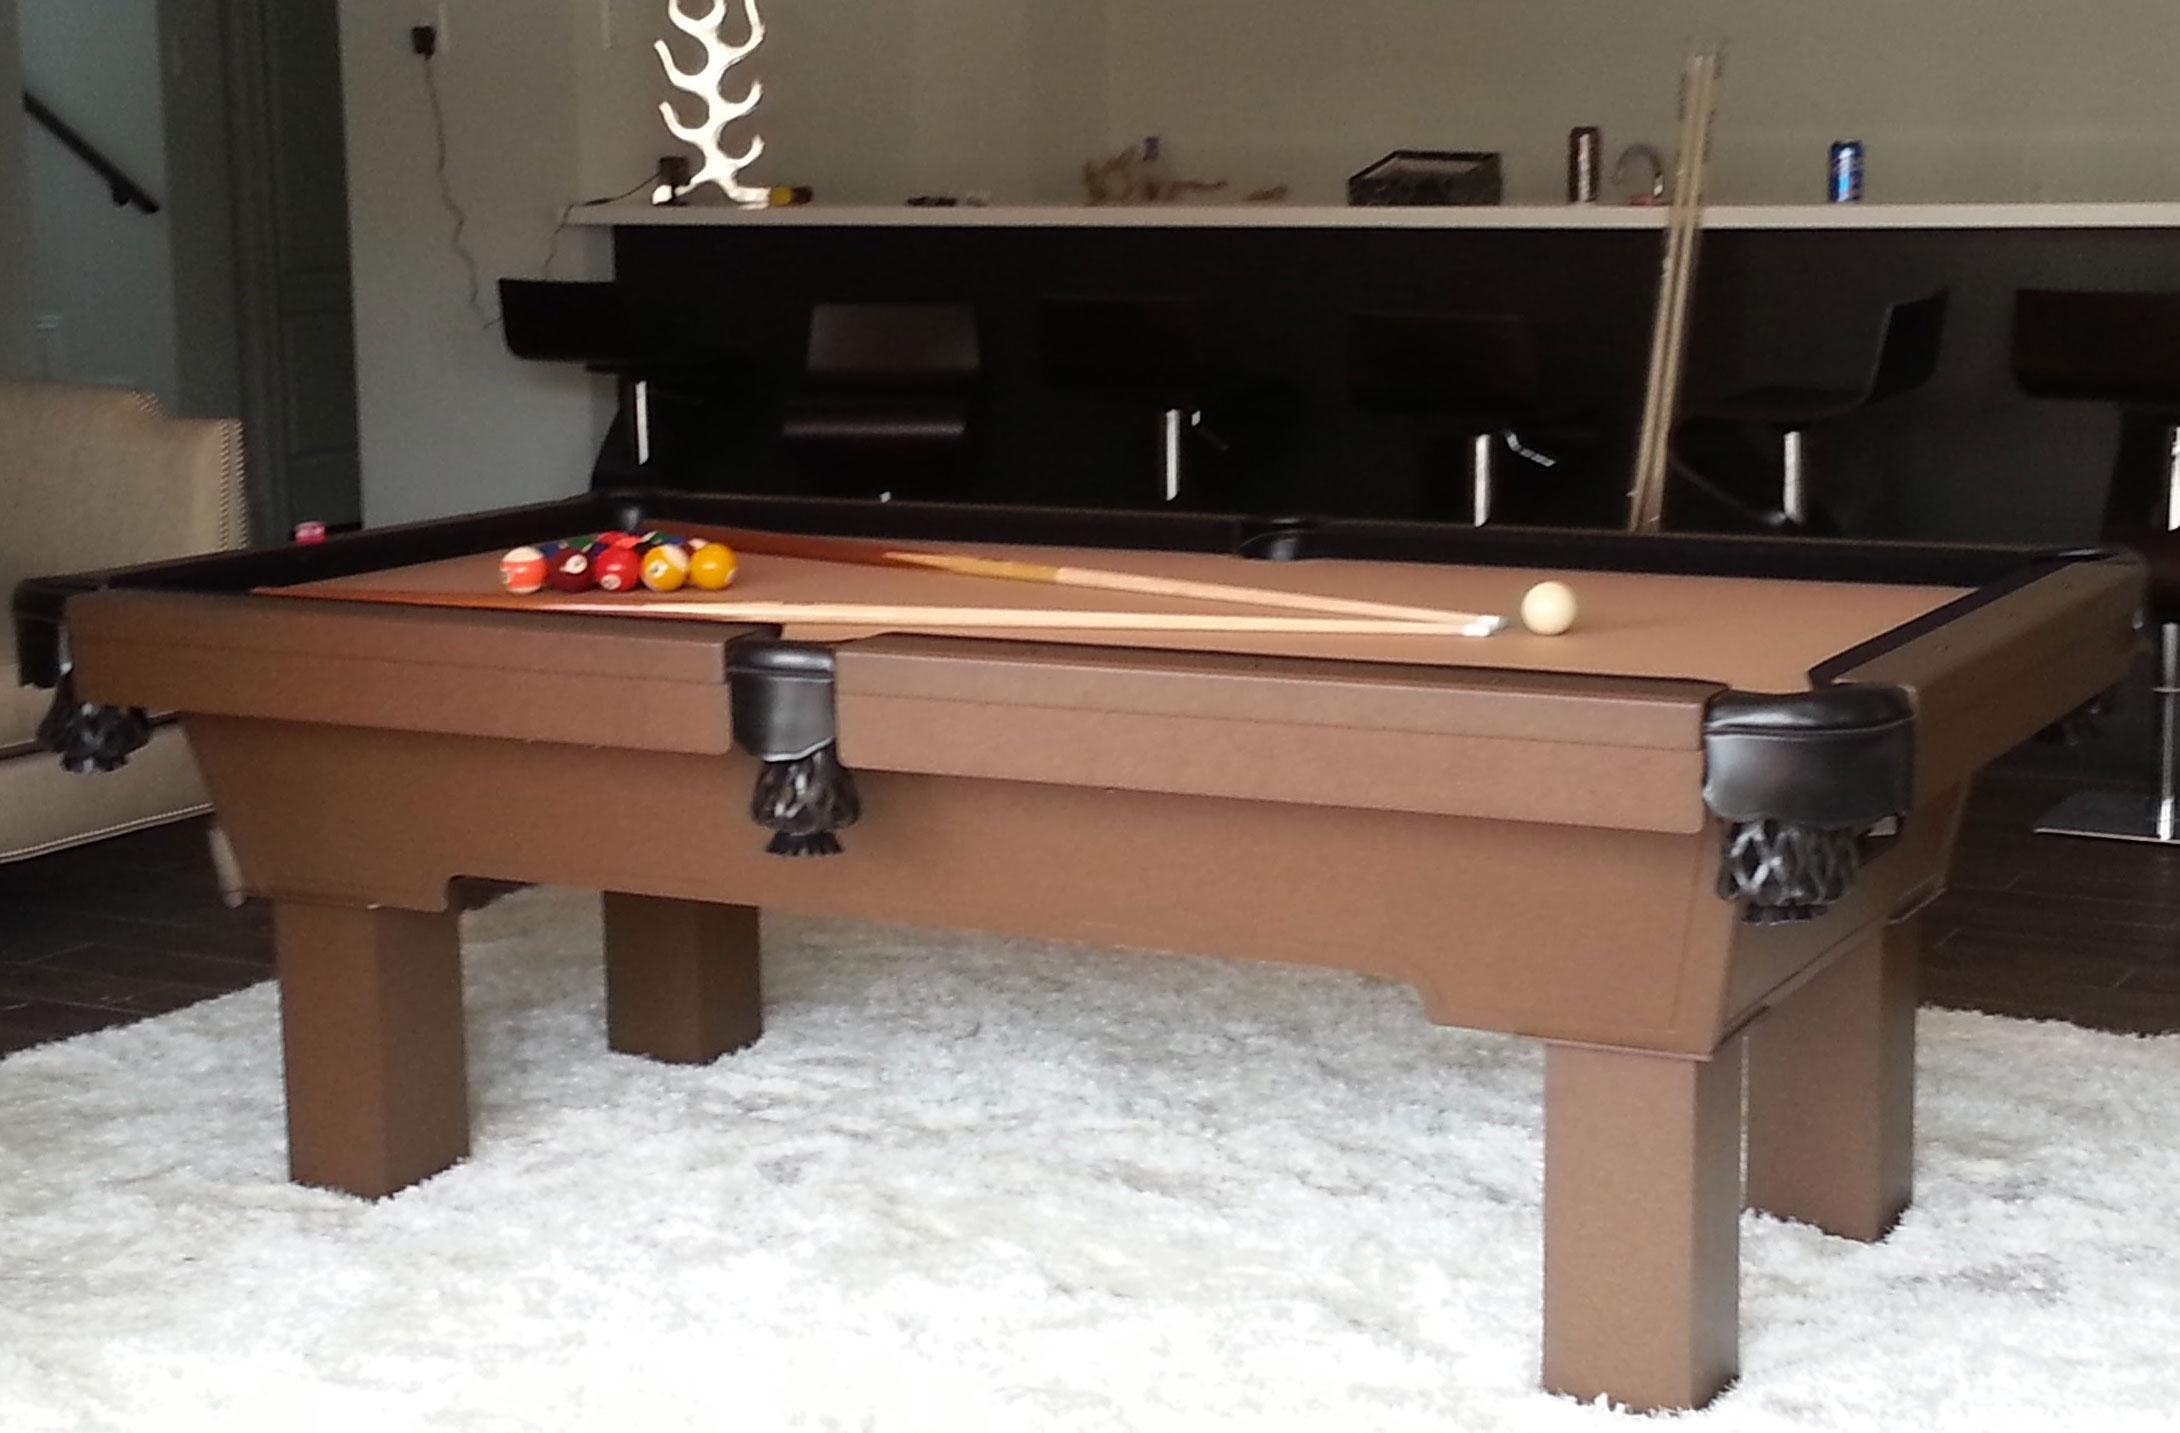 Caesar custom outdoor pool table in client's home